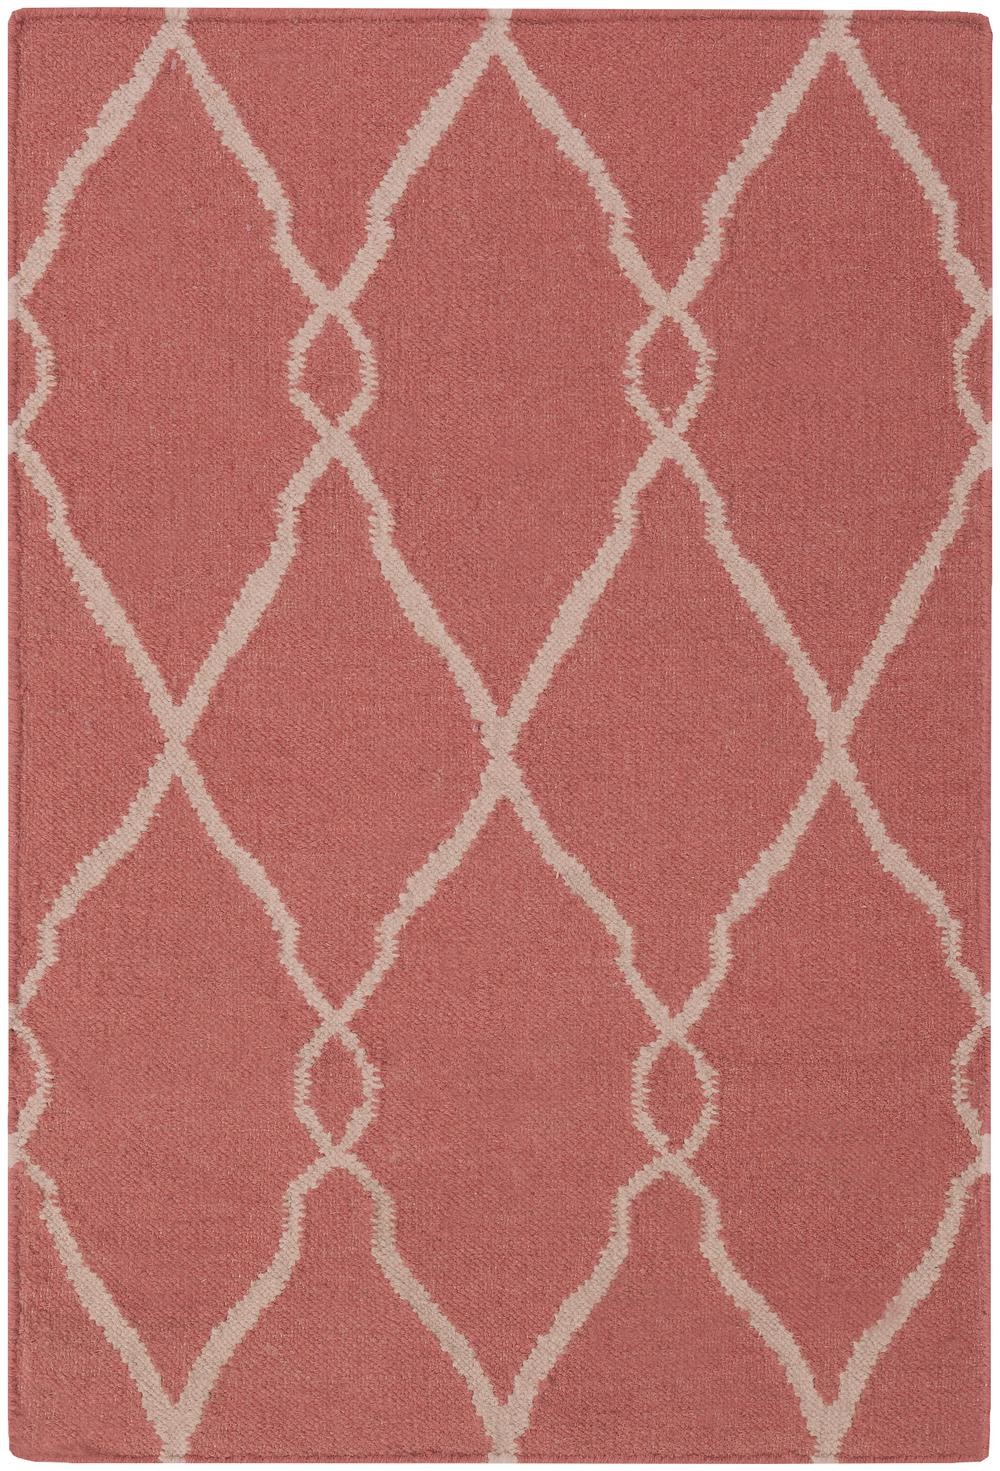 Surya Fallon Fal1002 Red Area Rug Free Shipping